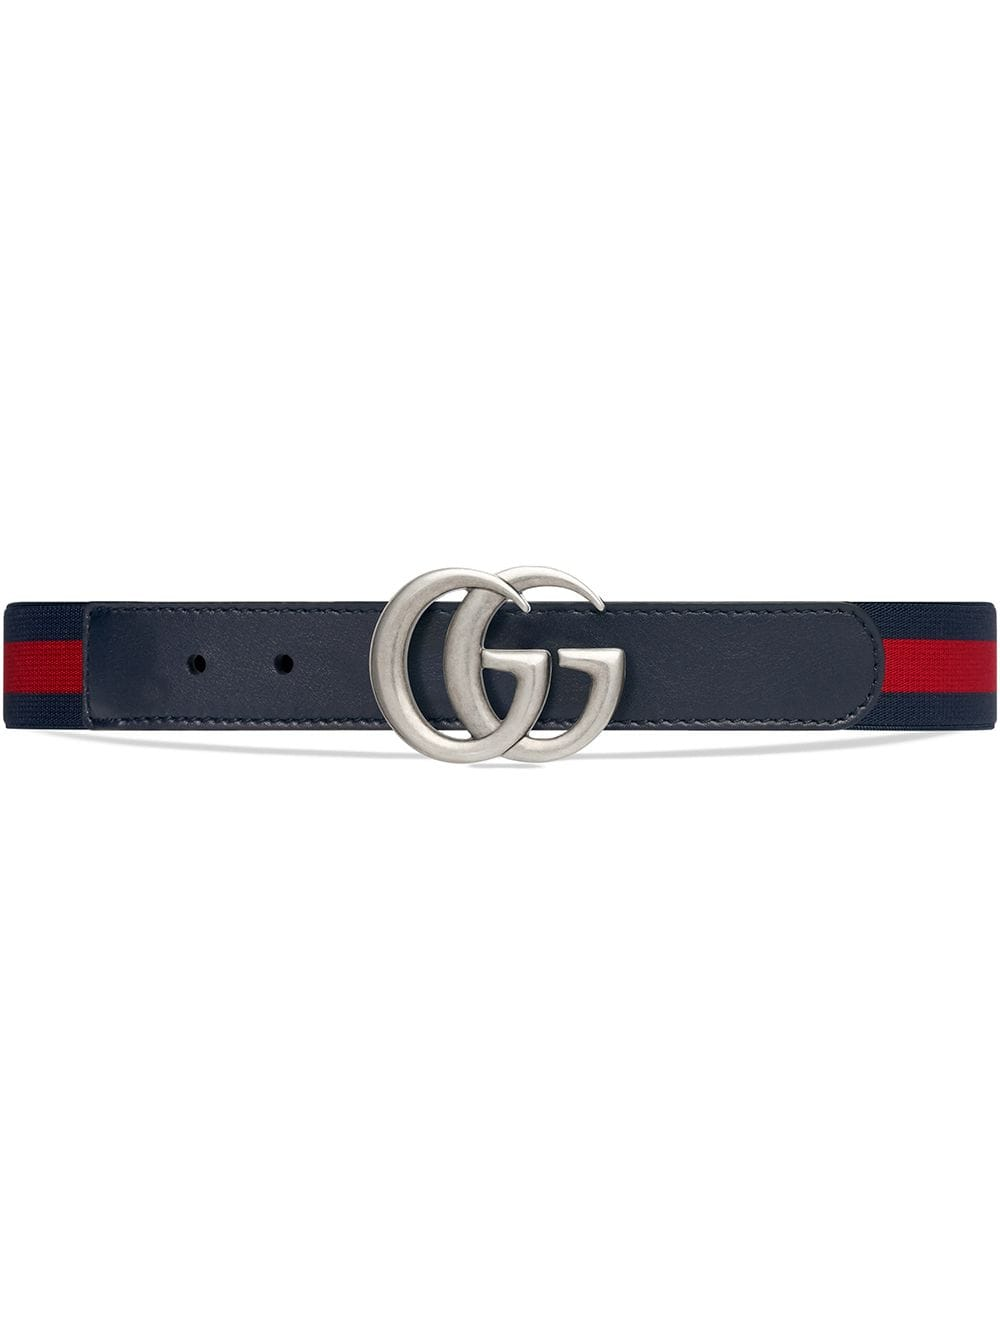 Gucci Kids Children's elastic Web belt - Blau von Gucci Kids